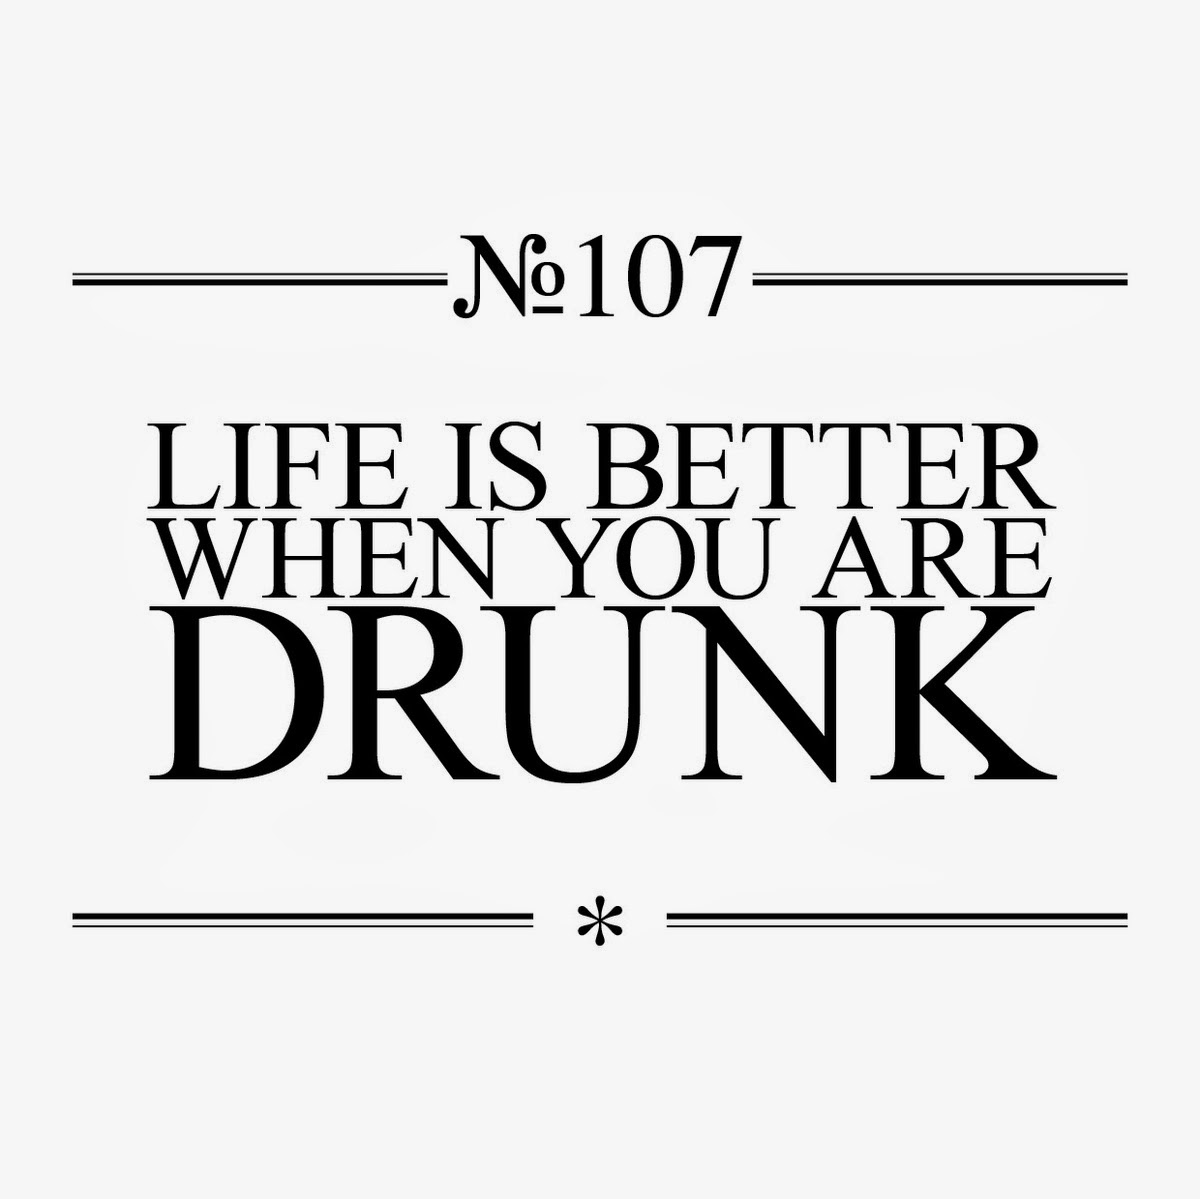 Funny Love Drunk Quotes | Funny Love Quotes